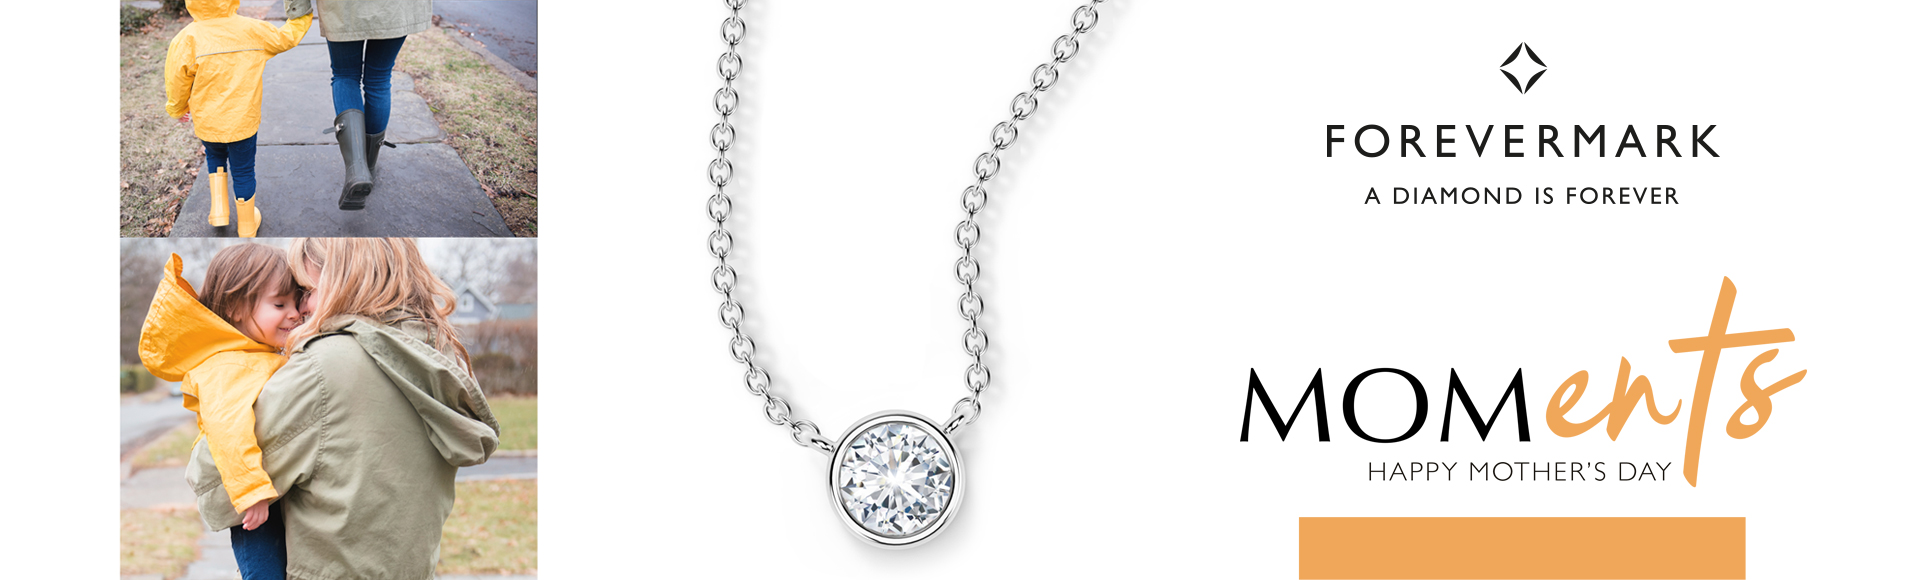 Forevermark The One for Mother's Day